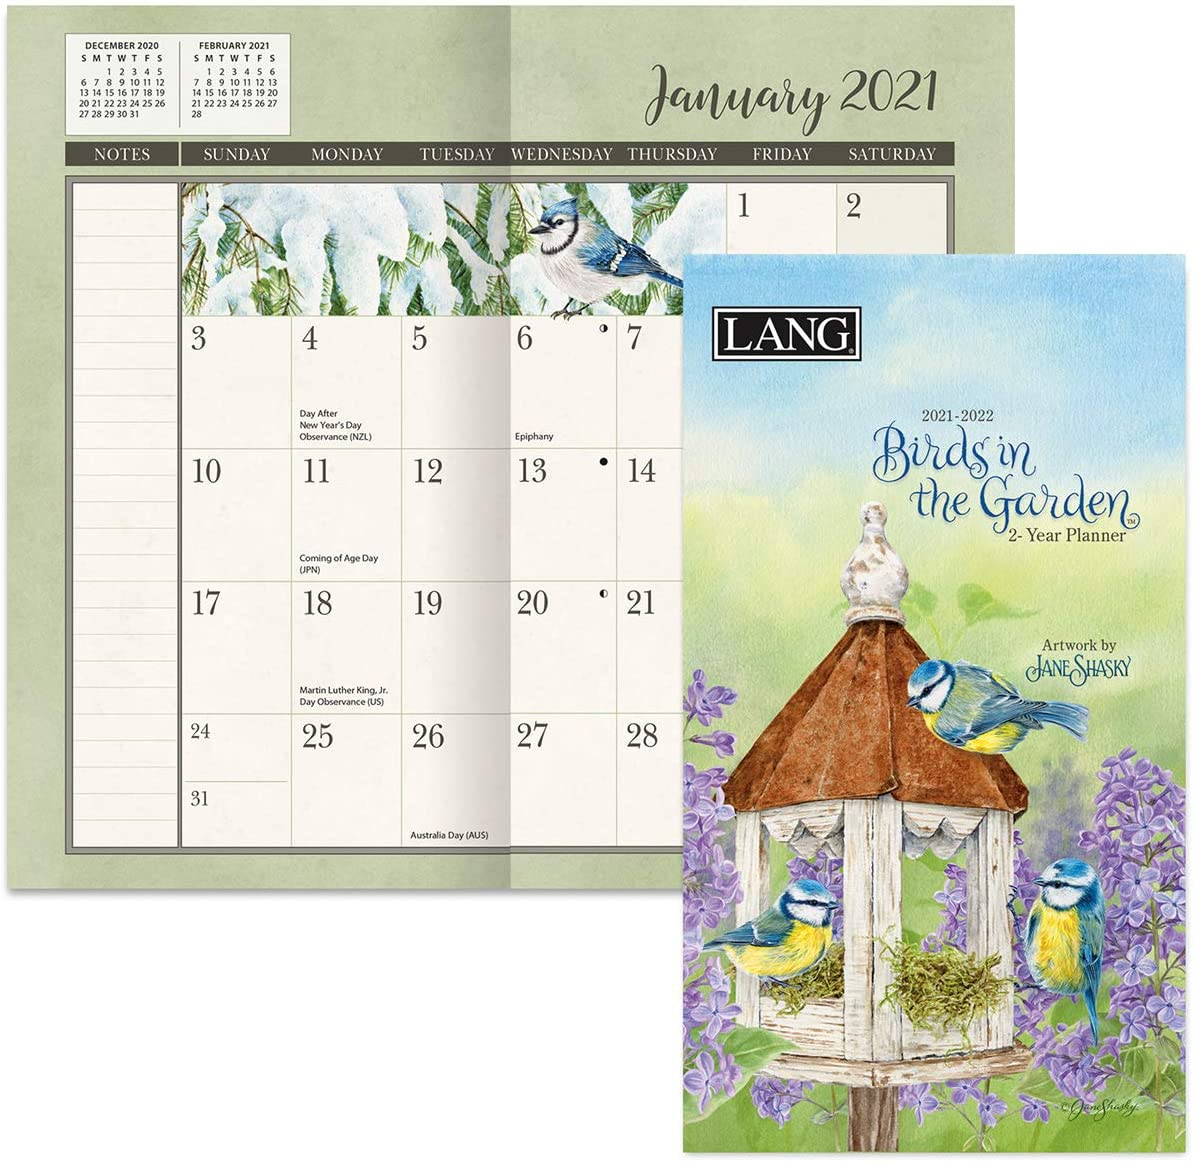 Lang Birds in The Garden 2021 Two Year Planner (21991071093)